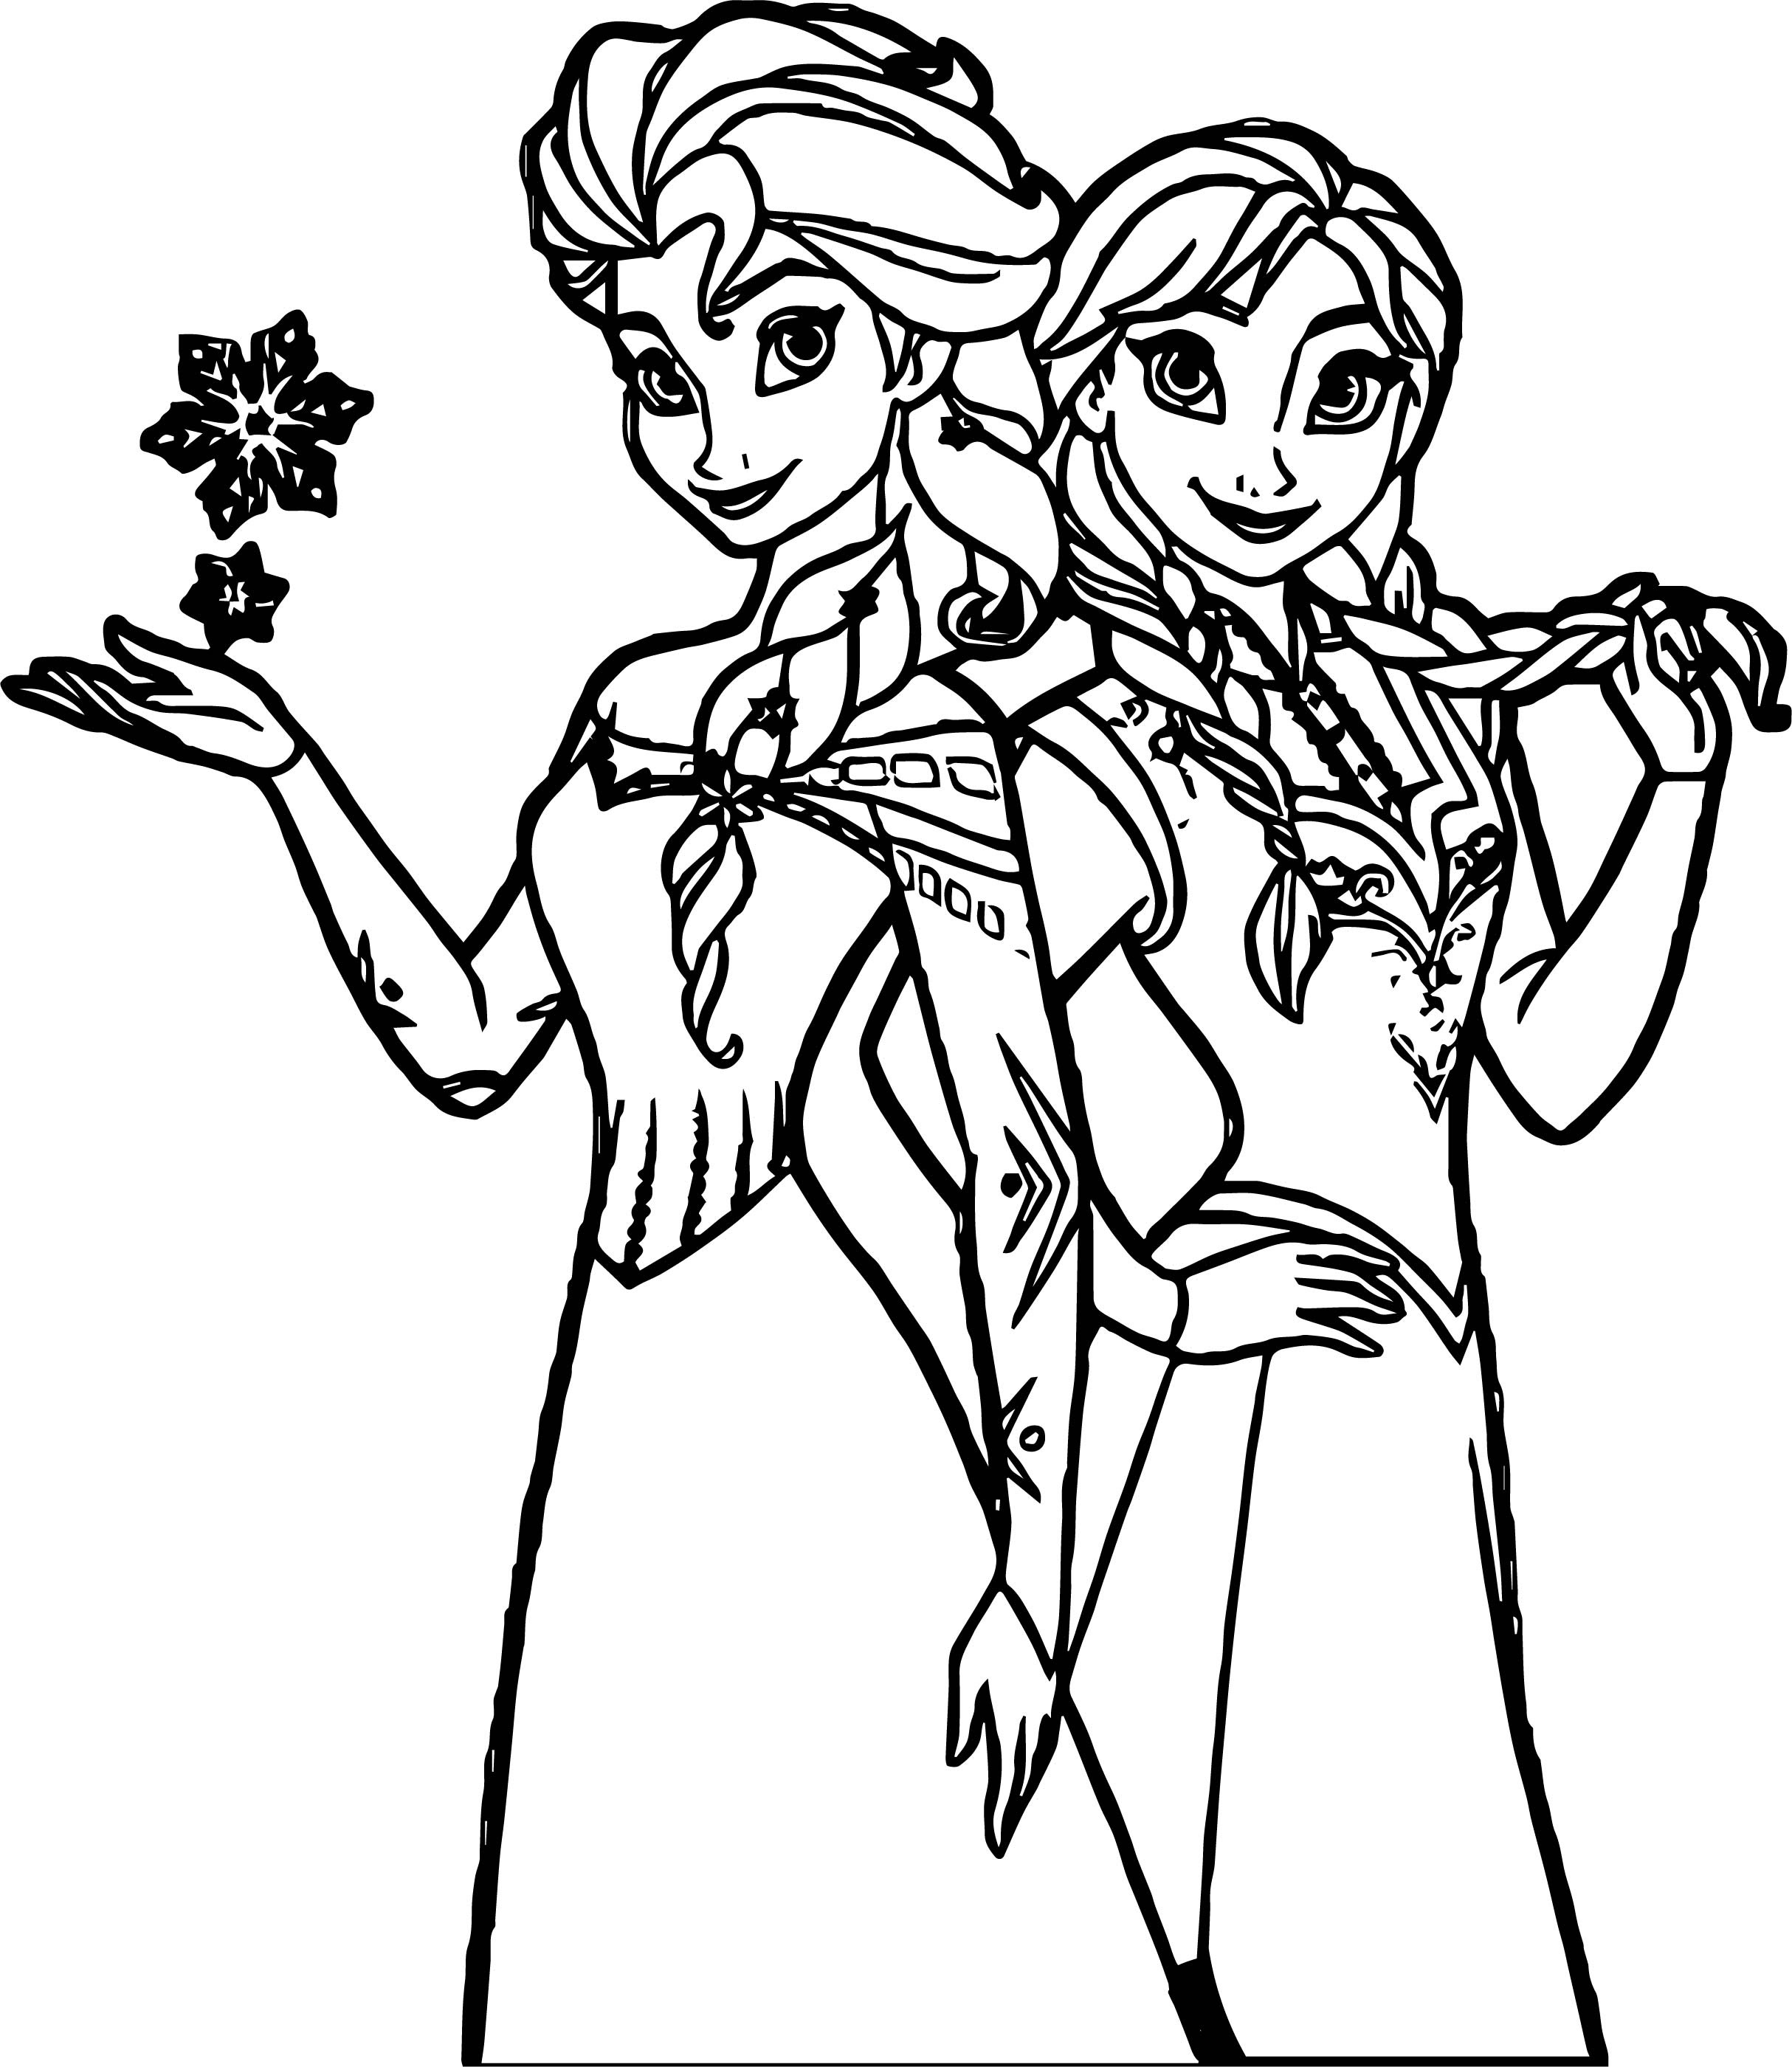 Anna Elsa Together Now Coloring Page Wecoloringpagecom